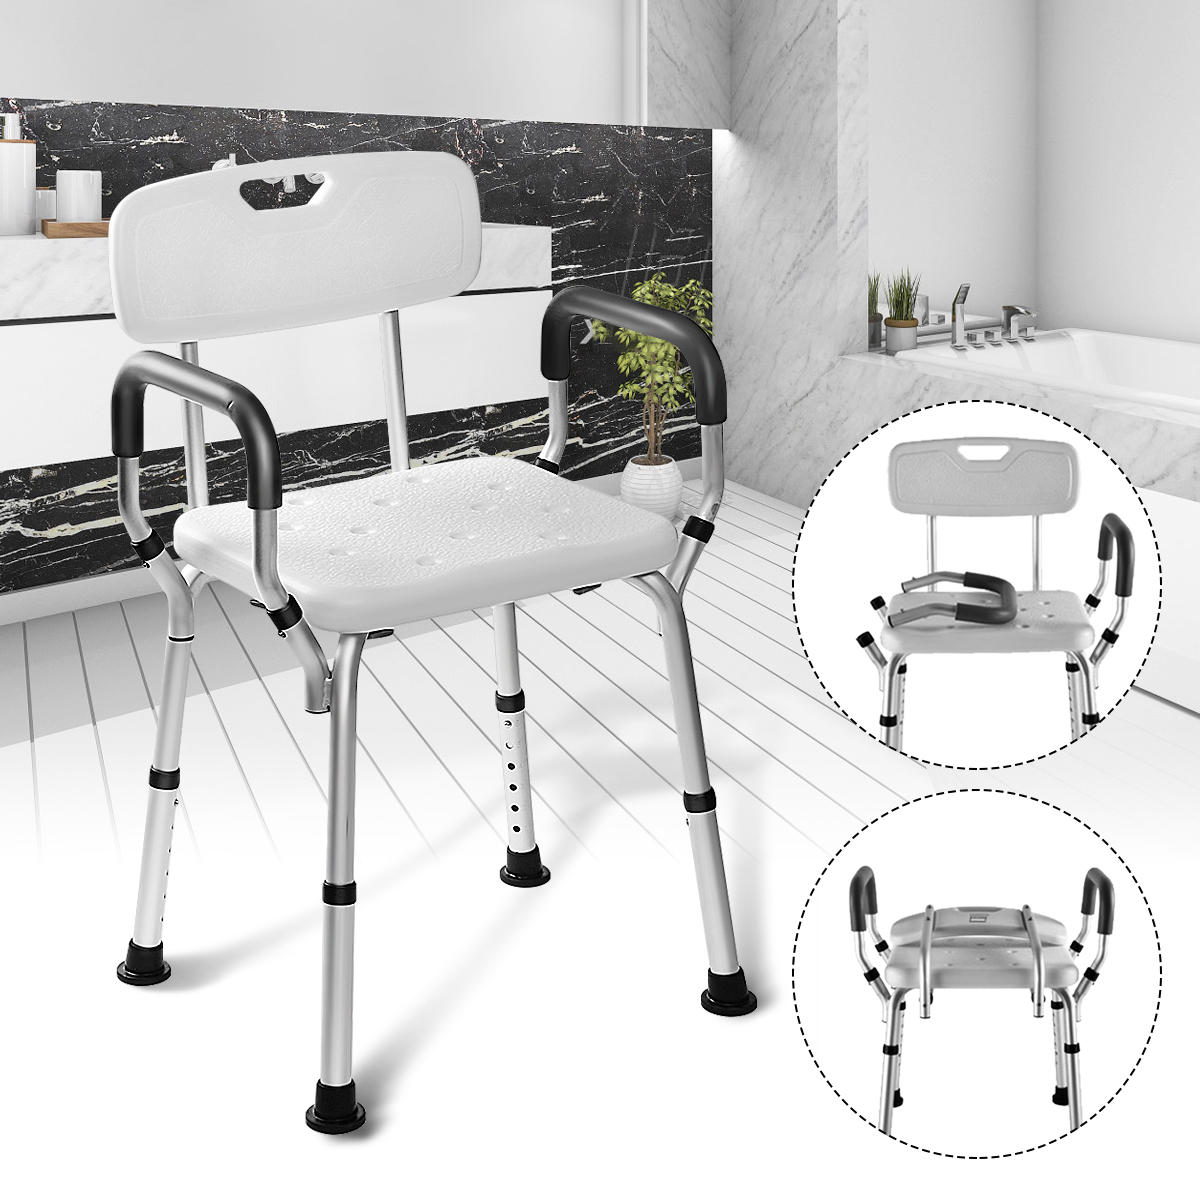 folding chair for bathroom target counter height chairs adjustable medical shower bathtub bench bath seat aid customer also viewed